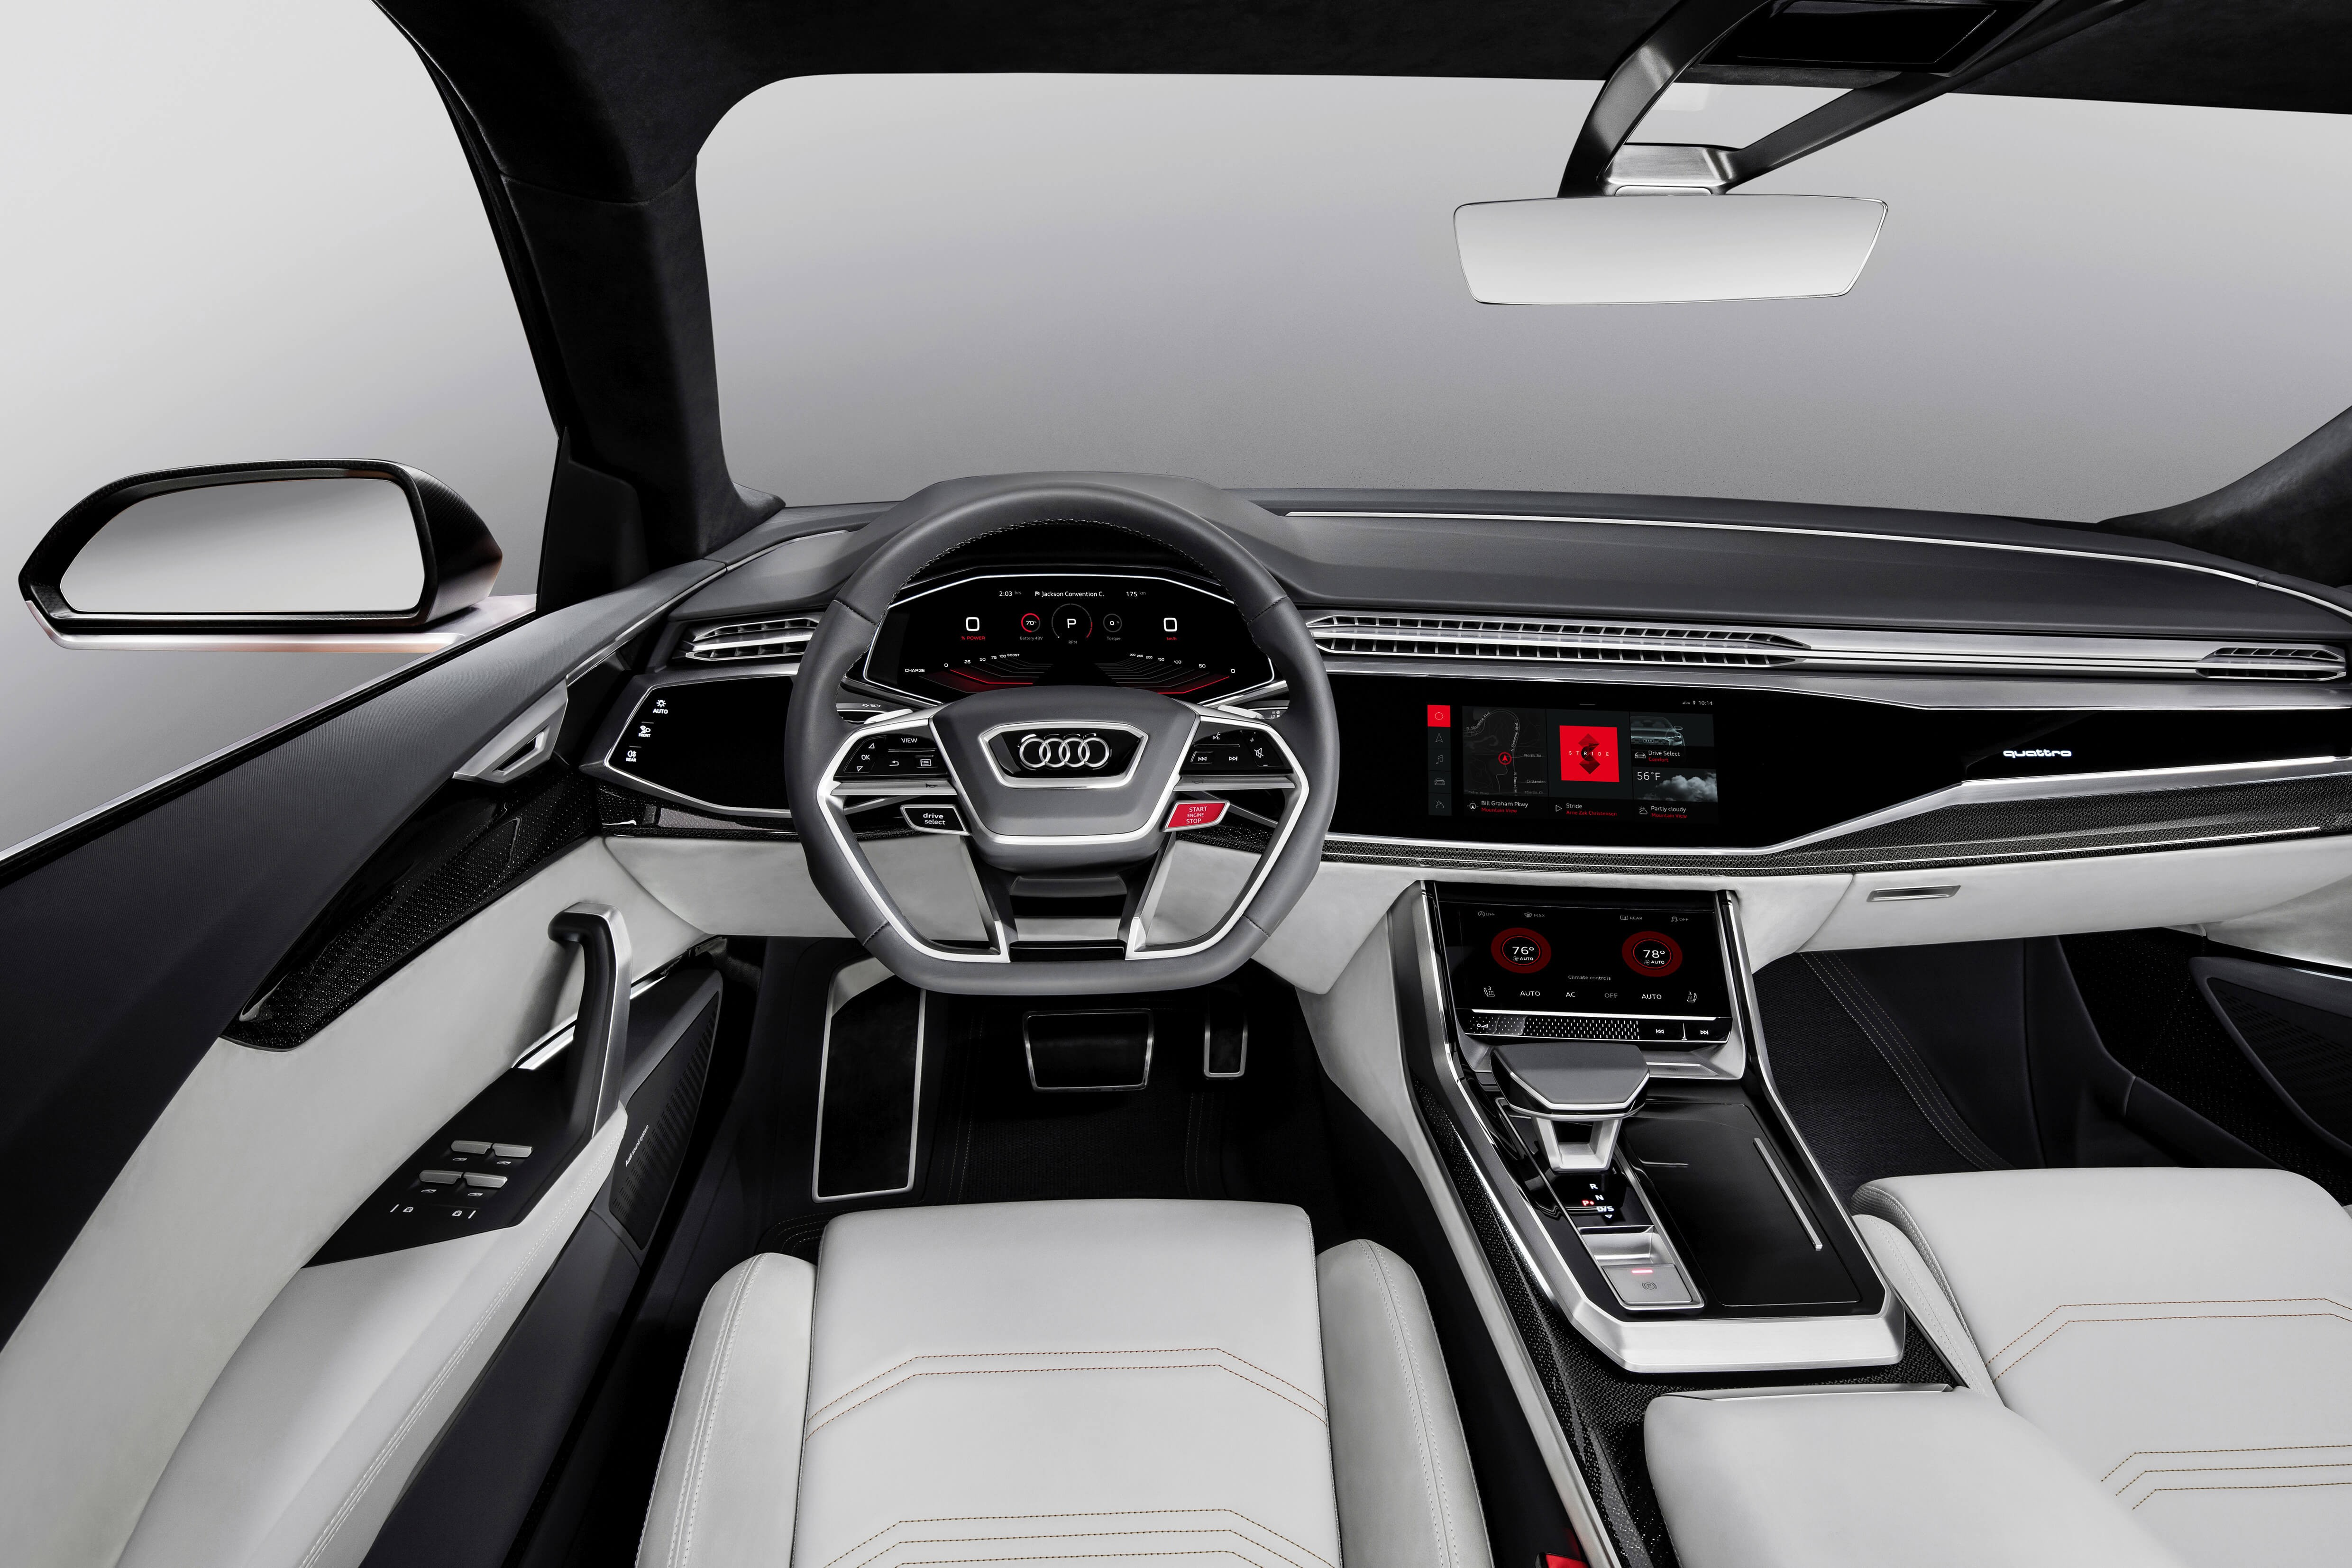 wallpaper audi q8 2018 cars interior 4k cars bikes 15842. Black Bedroom Furniture Sets. Home Design Ideas